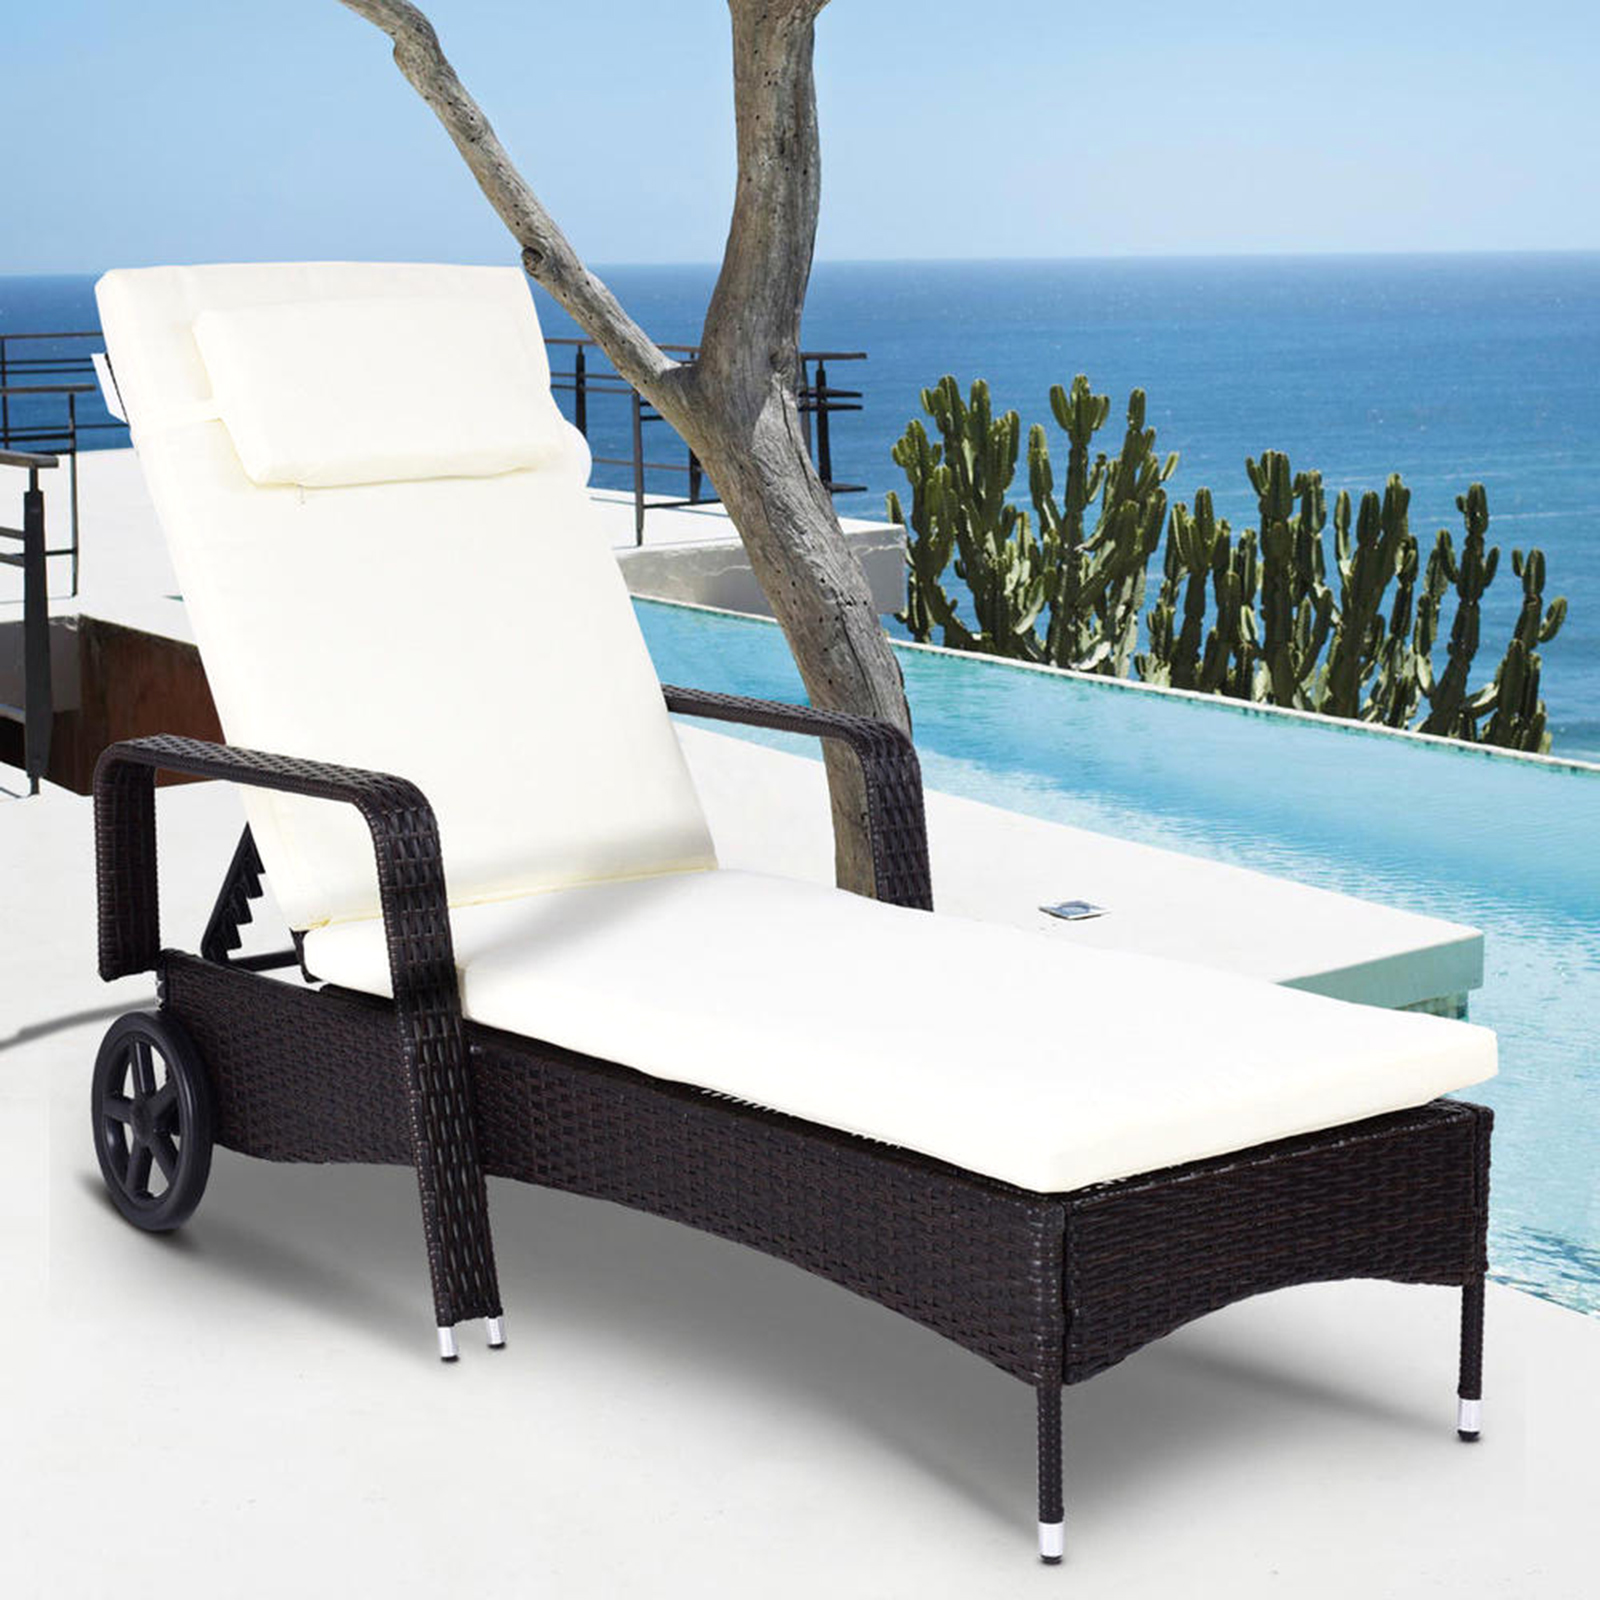 lounge chair patio childrens sofa argos chaise chairs sears goplus outdoor recliner cushioned furniture adjustable wheels